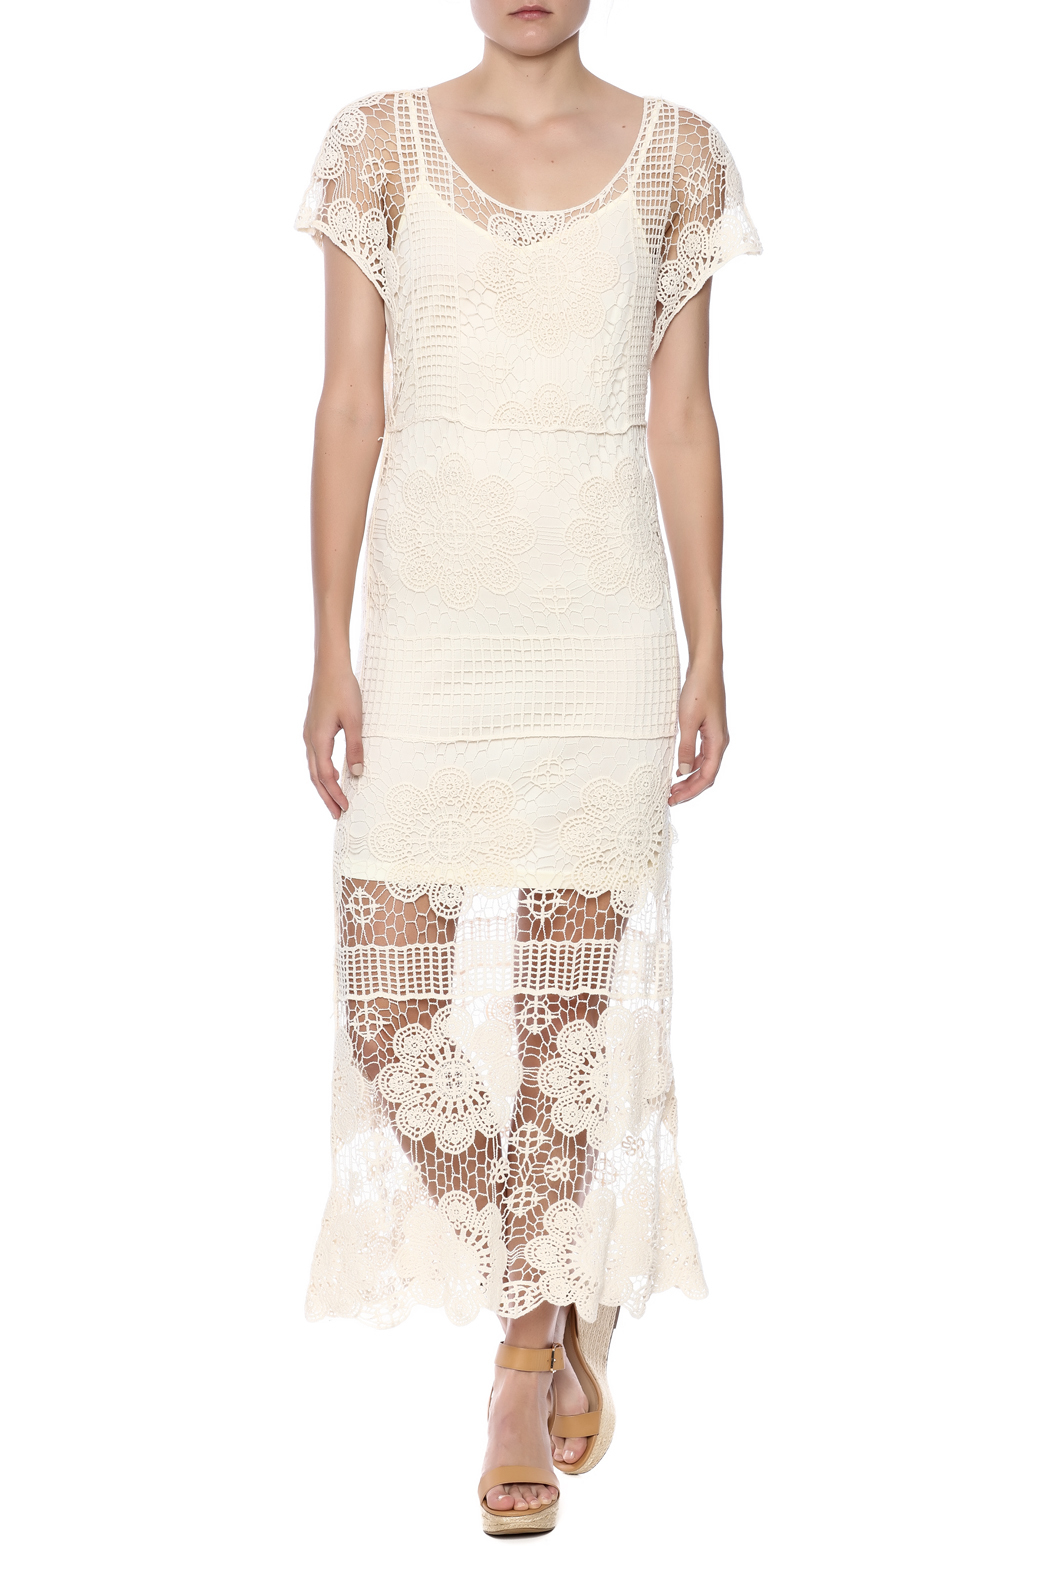 fashion on earth Ivory Romance Dress - Front Full Image